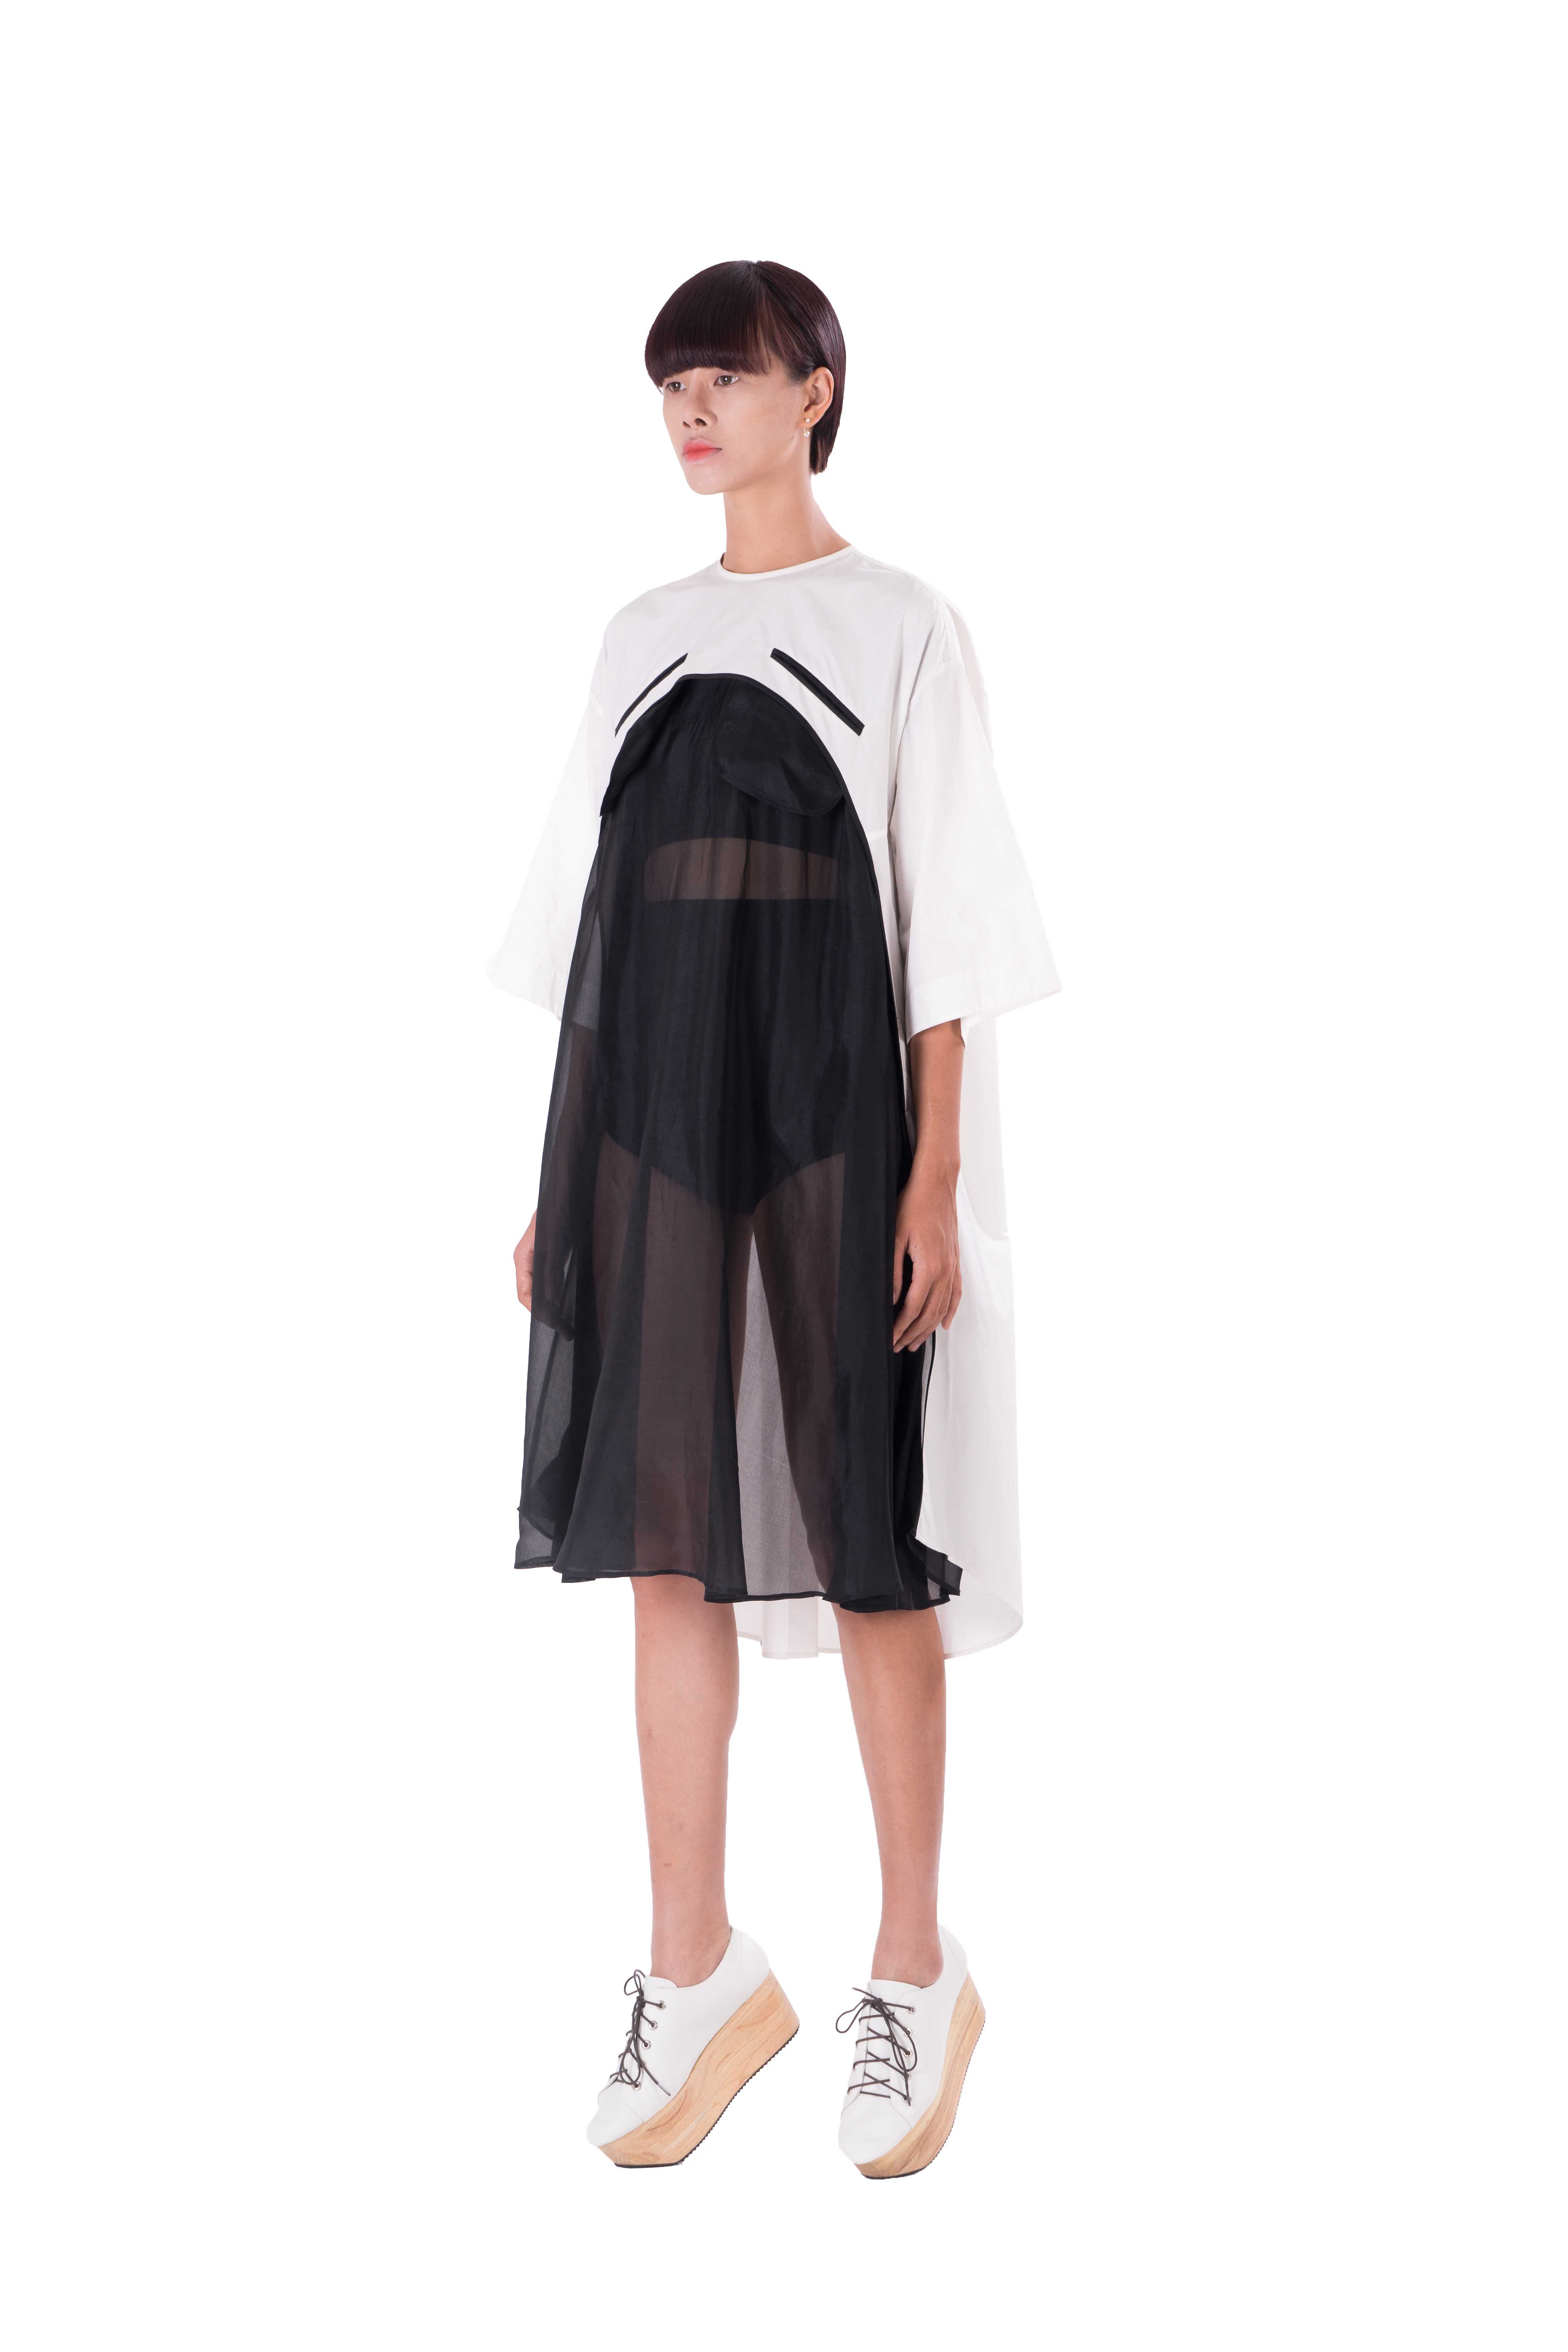 Black and white short sleeves kimono A line tunic